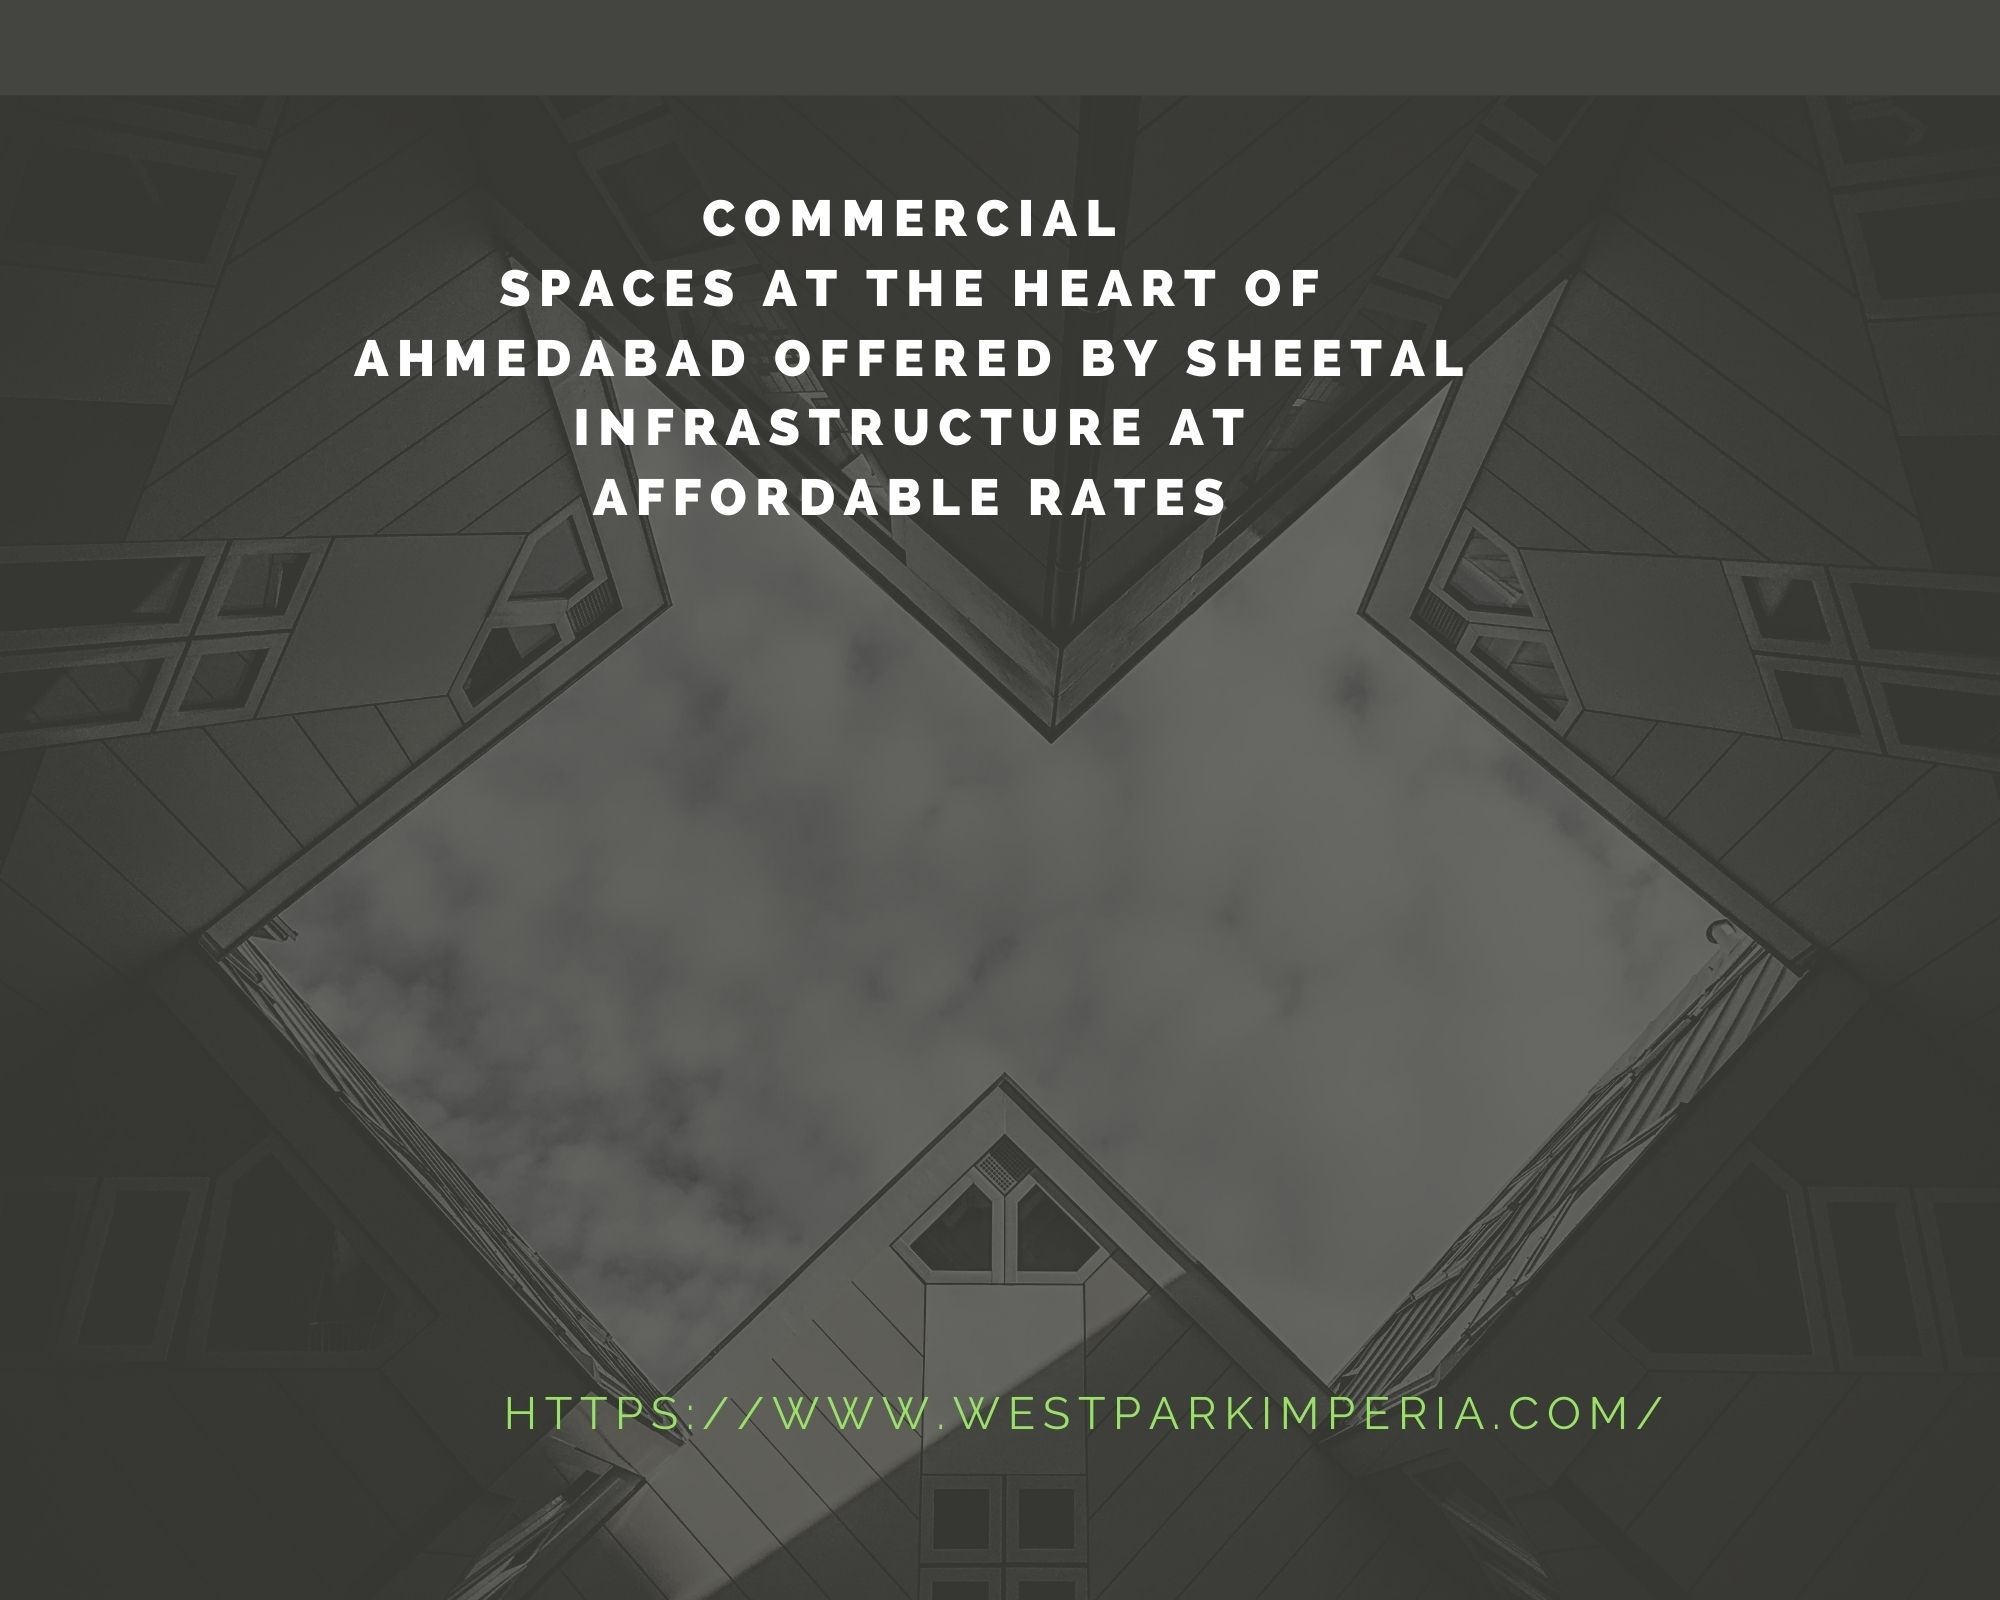 Commercial Spaces at the heart of Ahmedabad offered by Sheetal Infrastructure at affordable rates